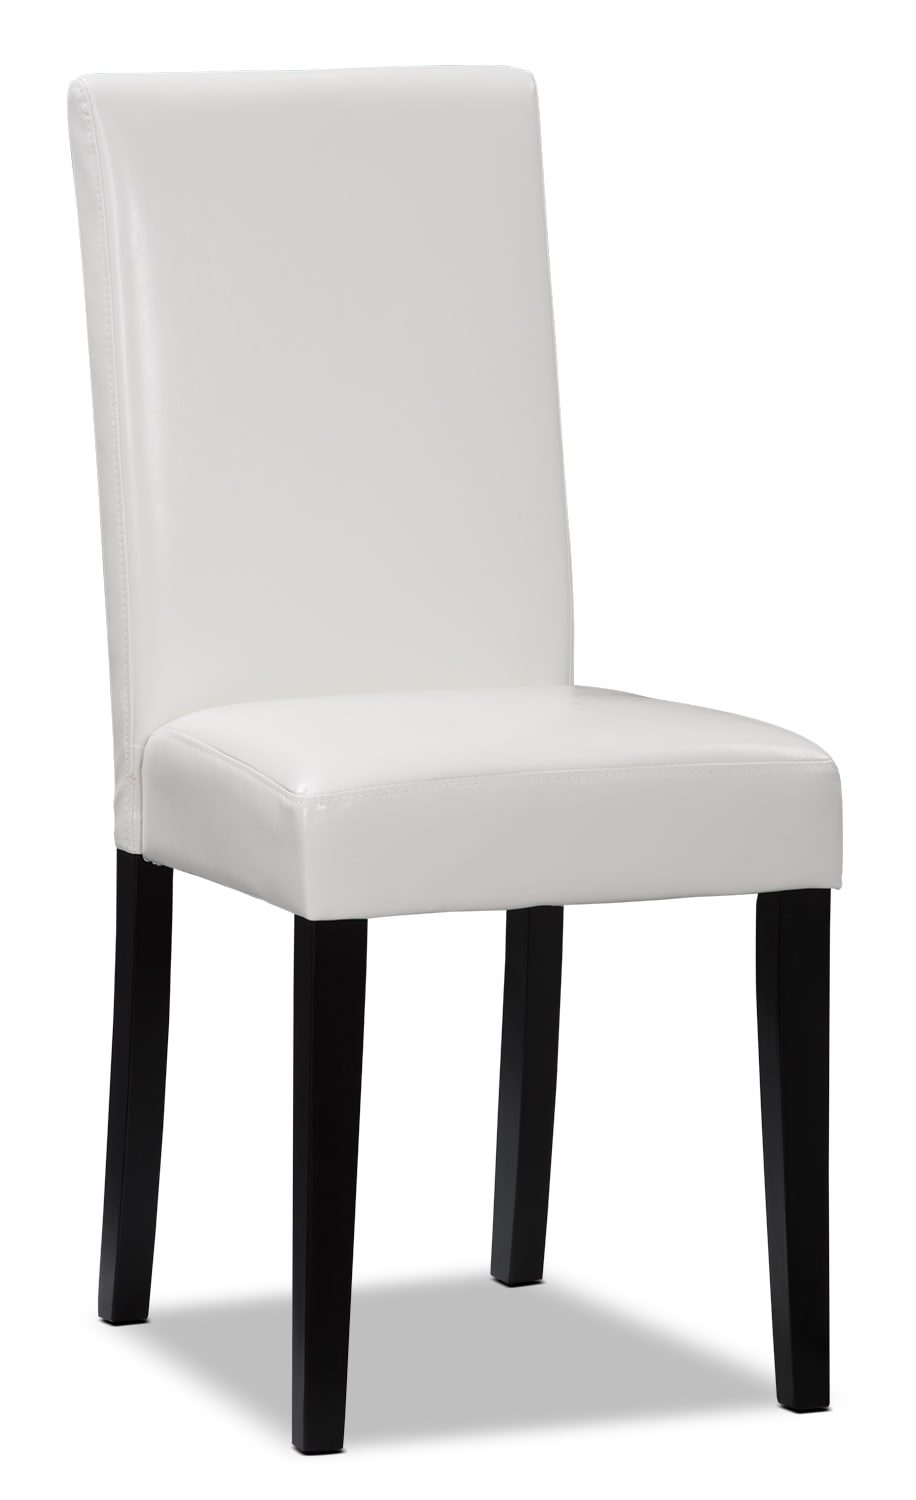 Dining Room Furniture - White Faux Leather Accent Dining Chair